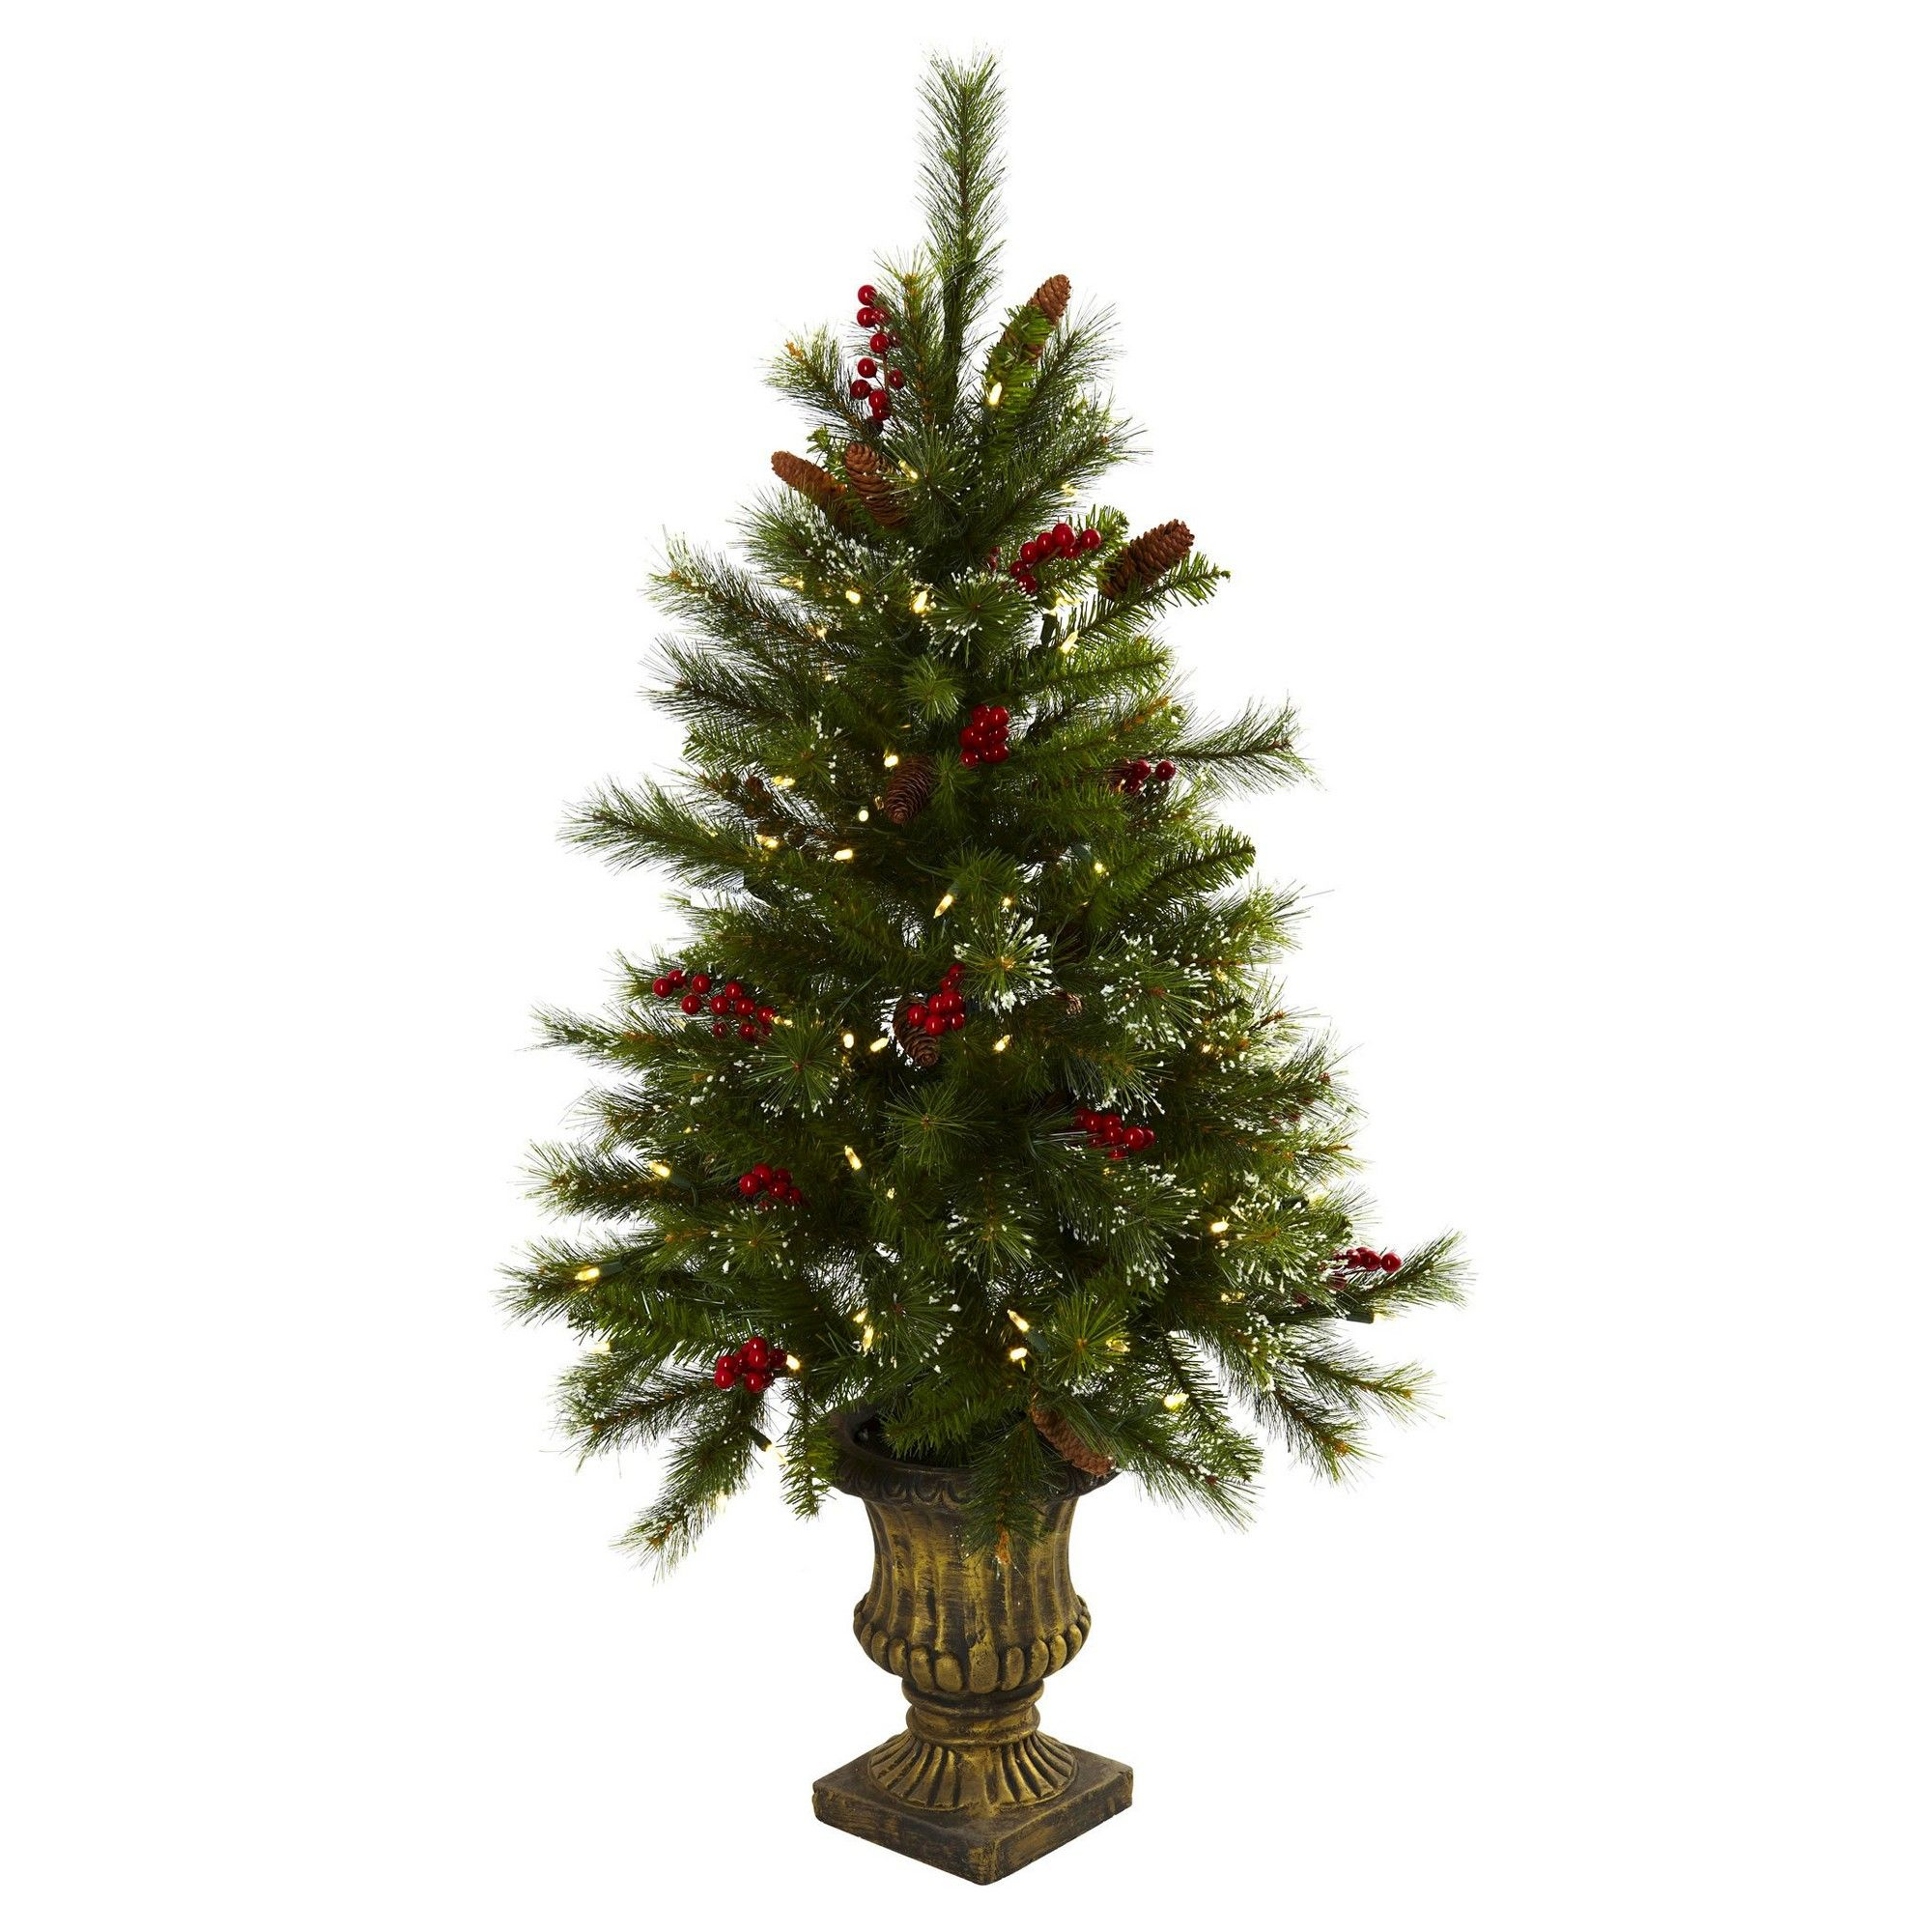 4 Christmas Tree With Berries, Pine Cones, Led Lights &